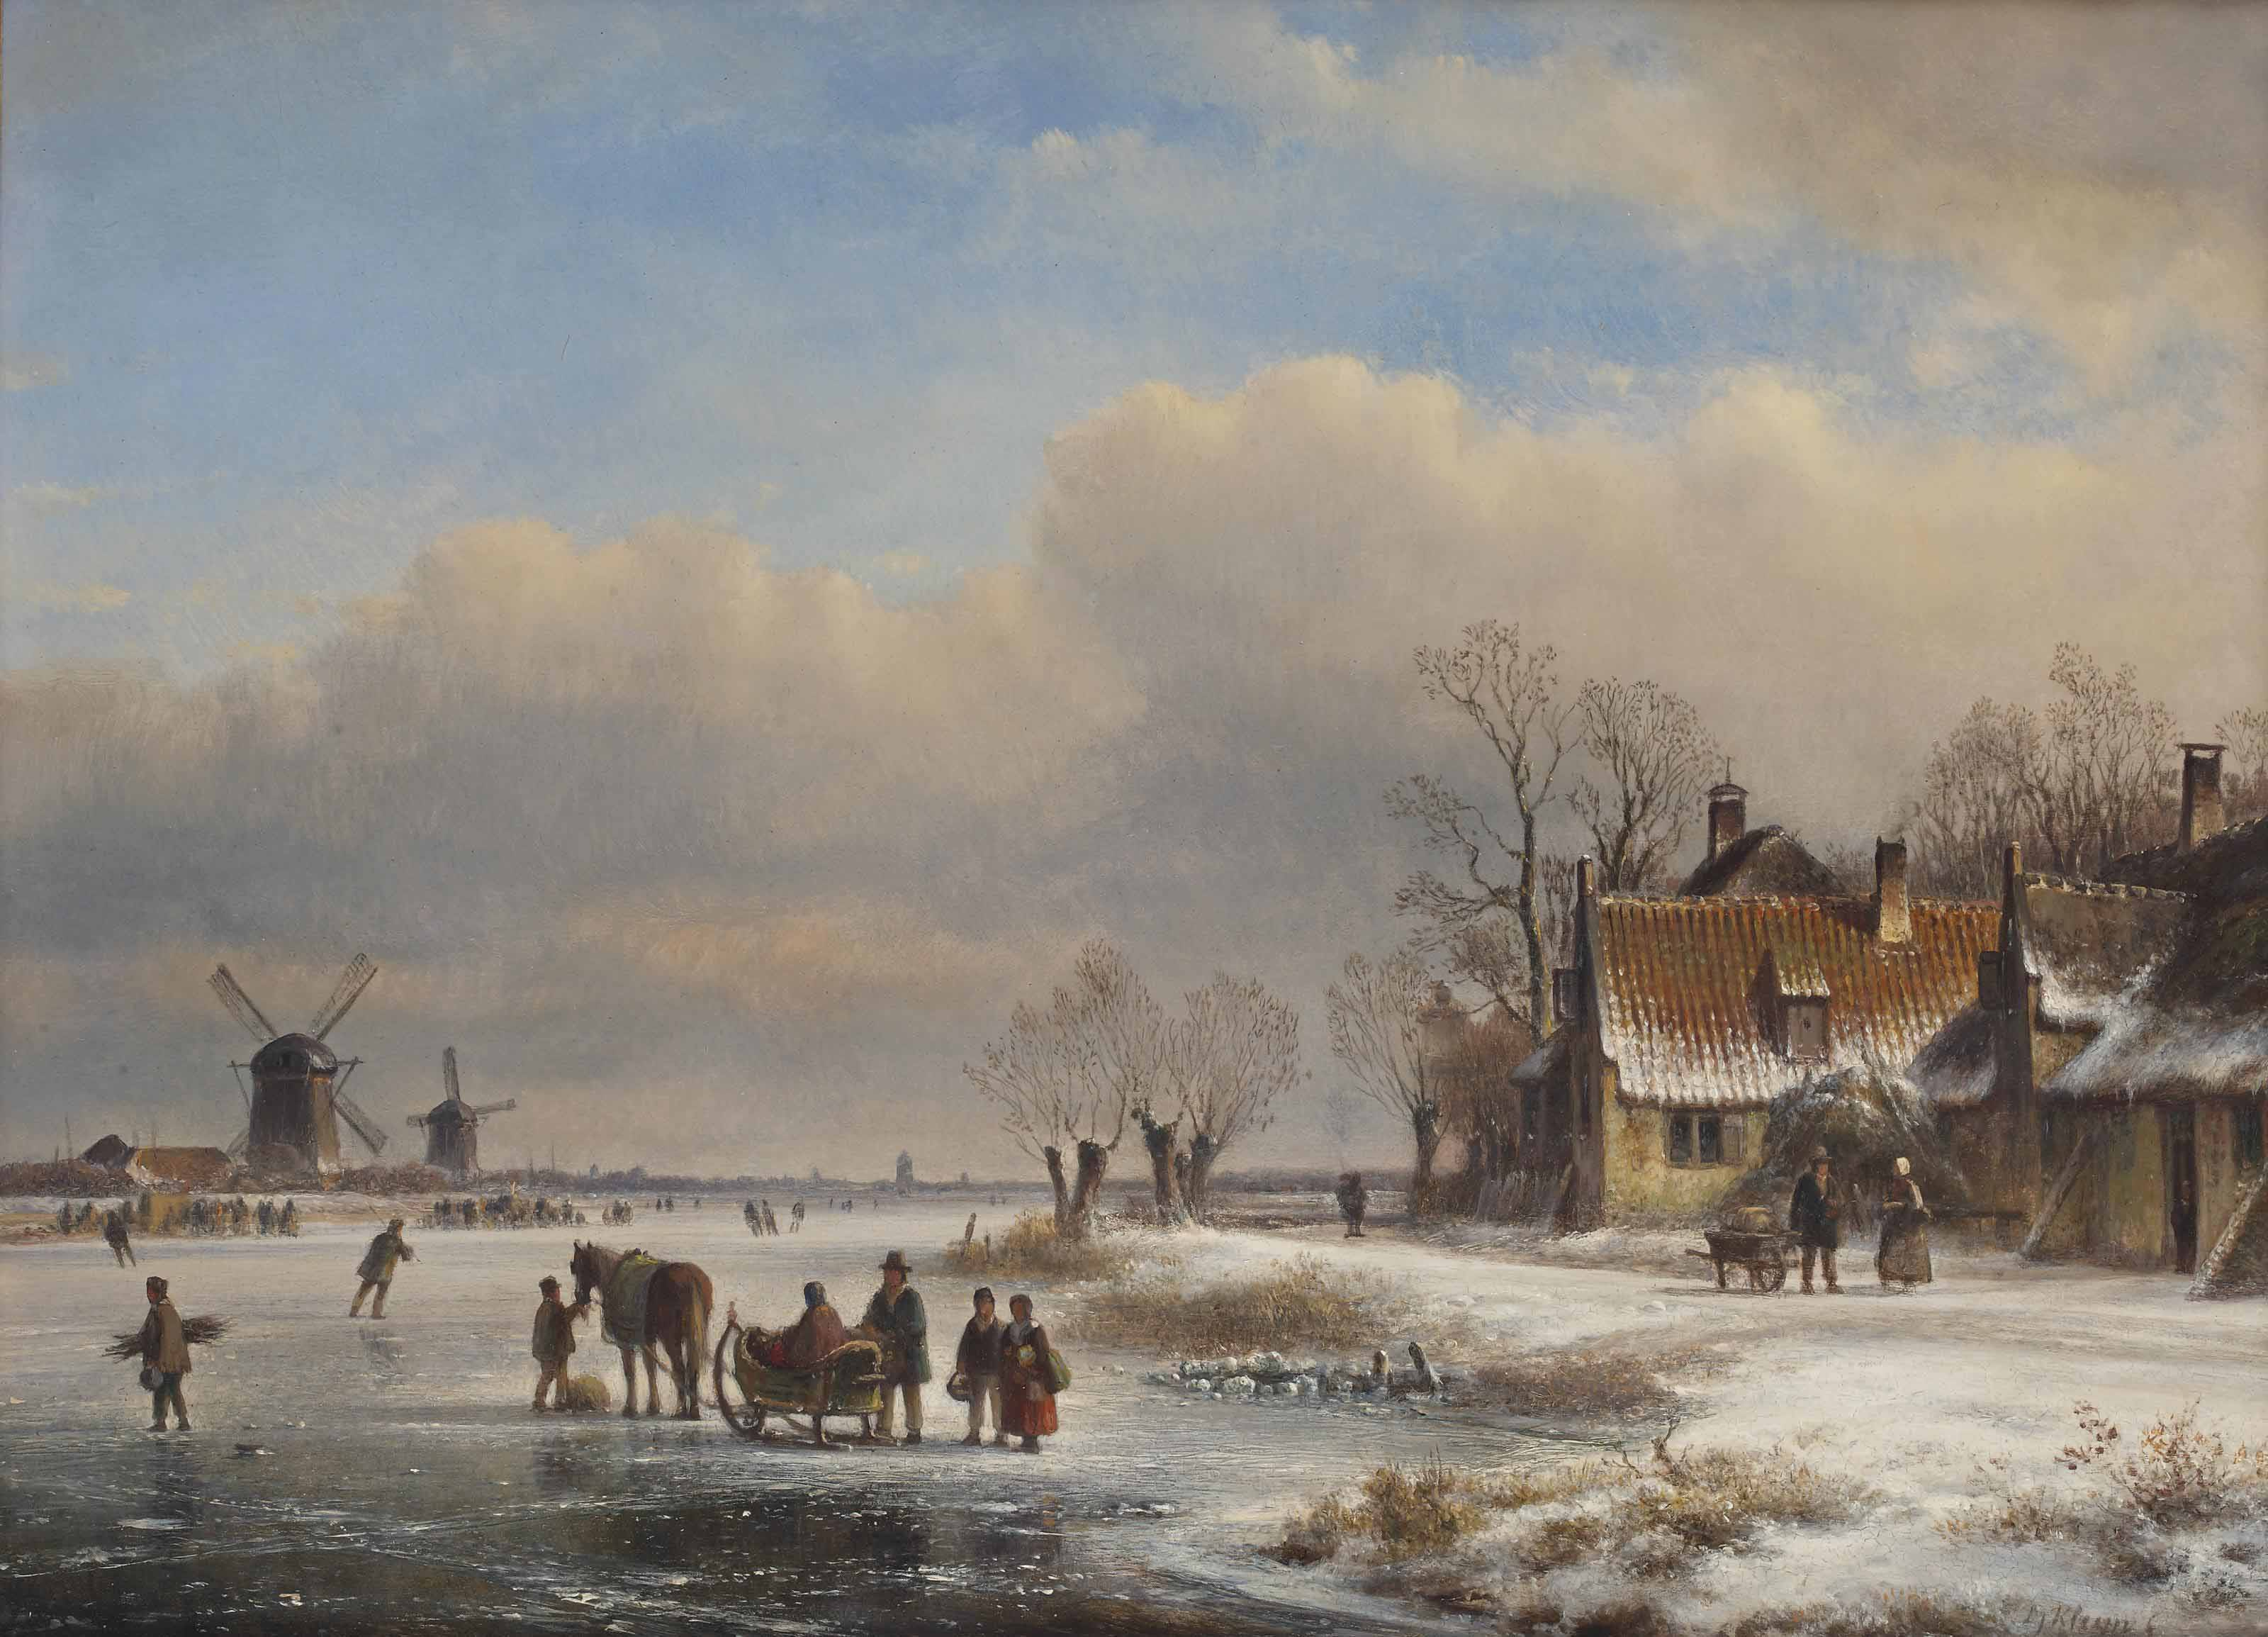 Figures and a sleigh on the ice